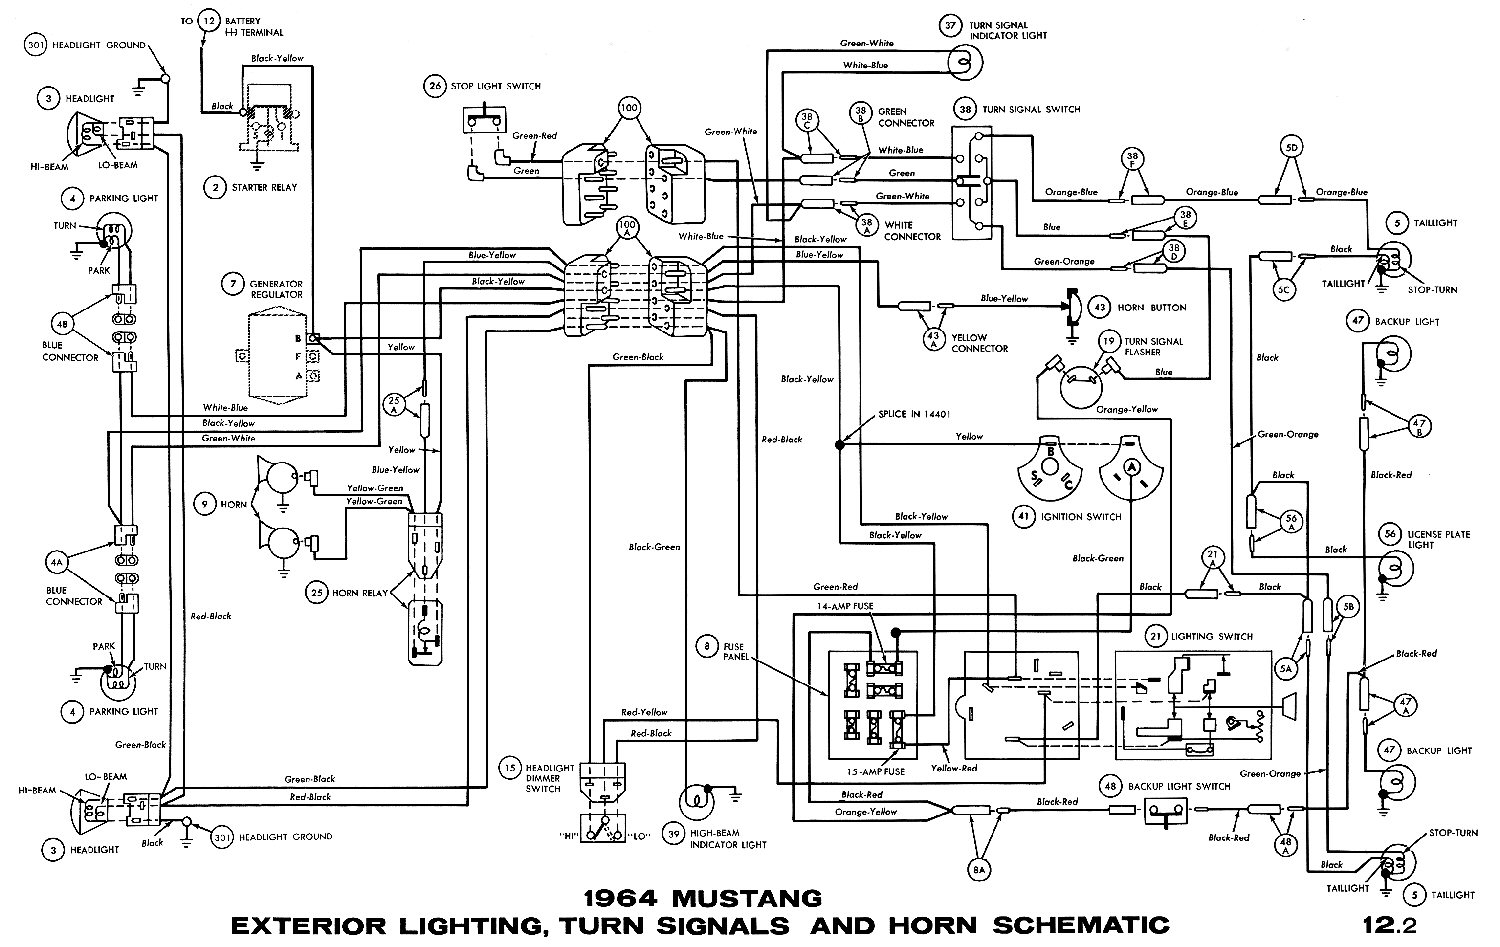 El Ritningar Mercury 900 Wiring Diagram 1964 Mustang Exterior Lightning Turn Signals And Horn Schematic